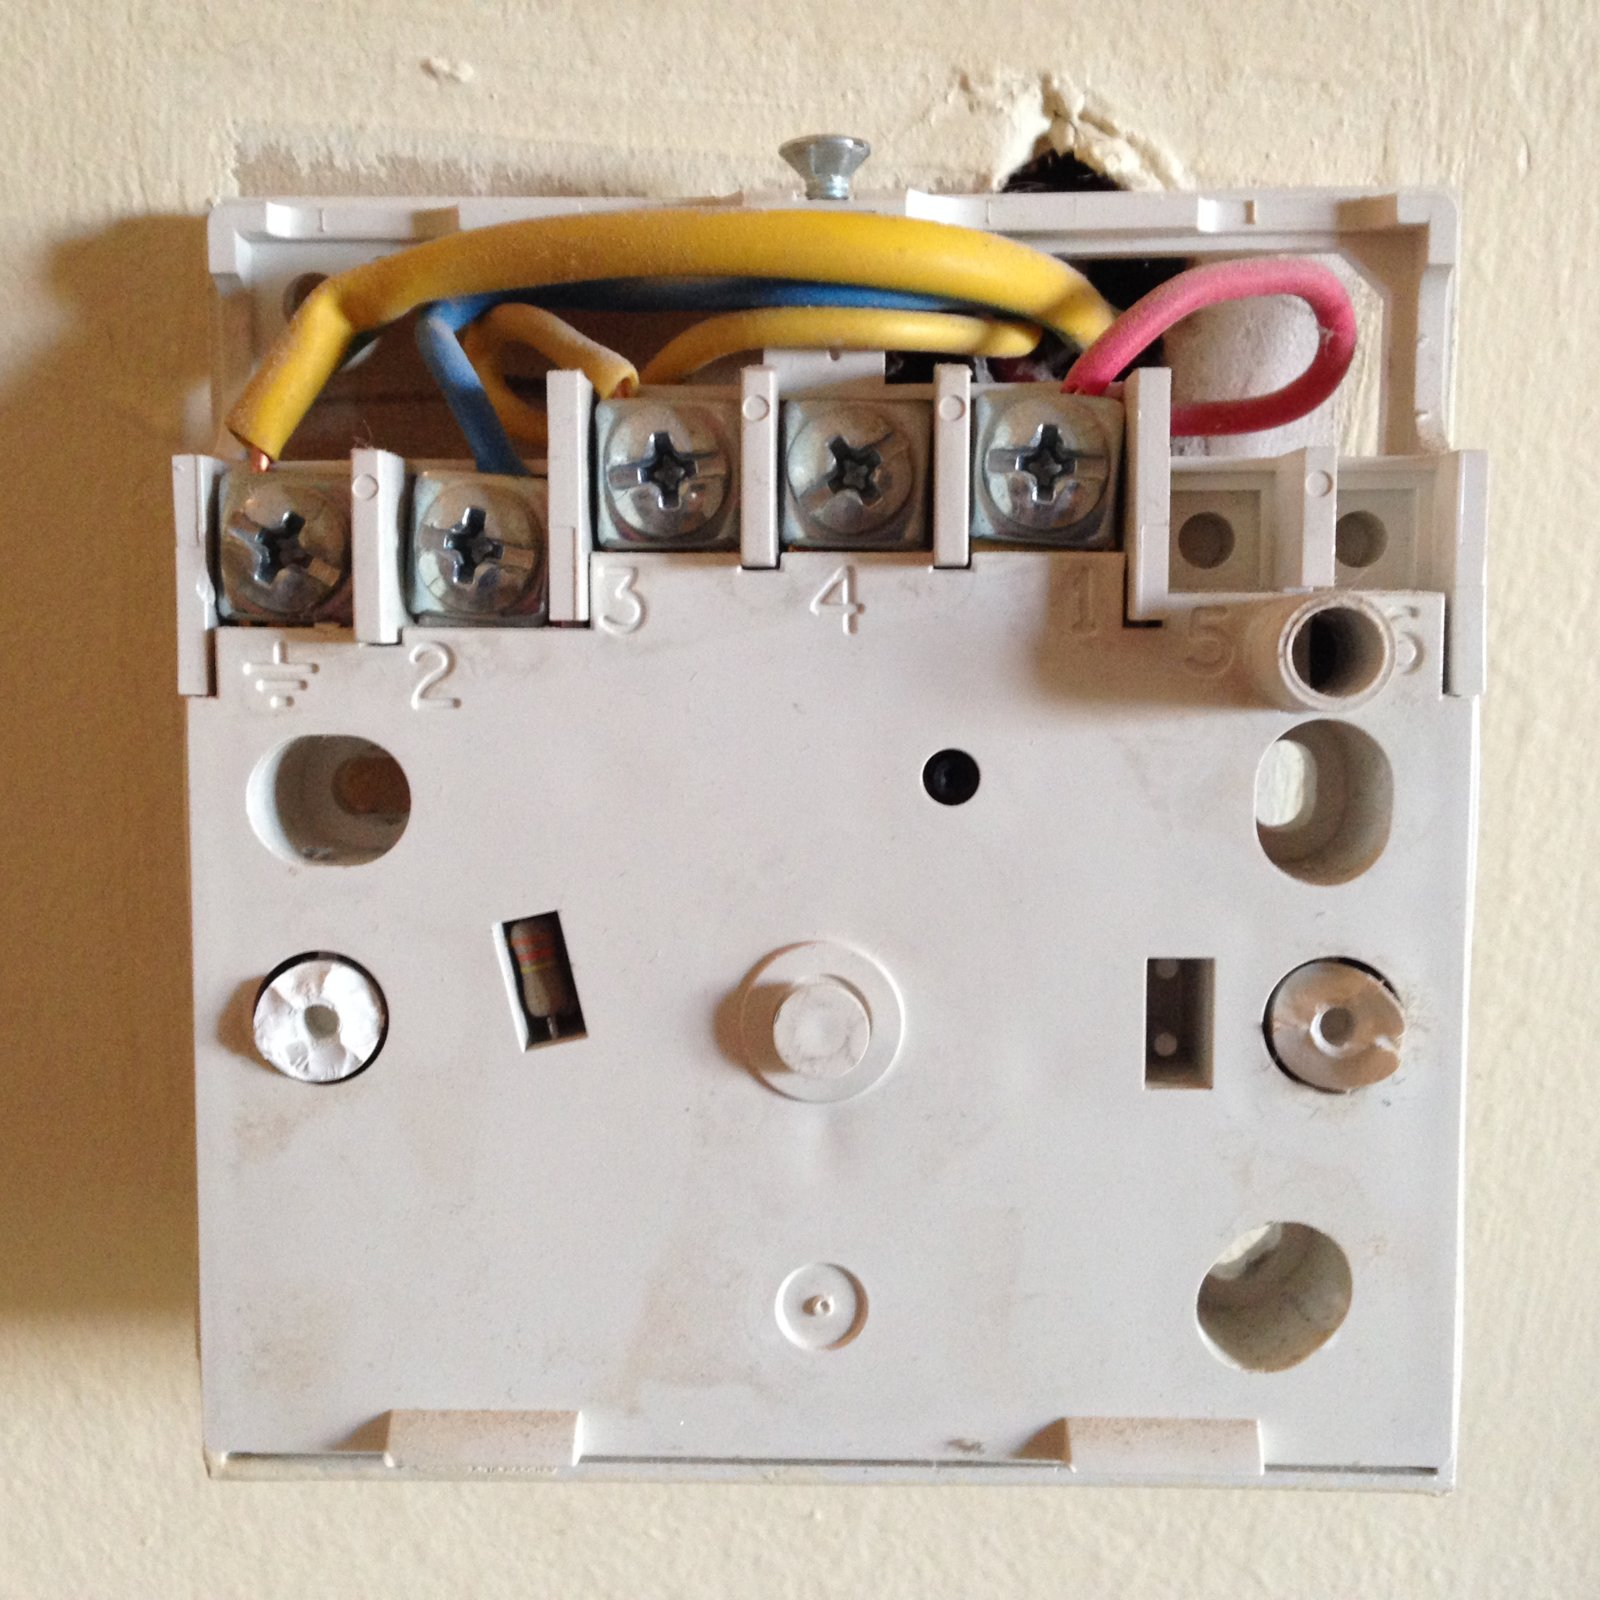 Nest Thermostat System Boiler Help Installing Nest On